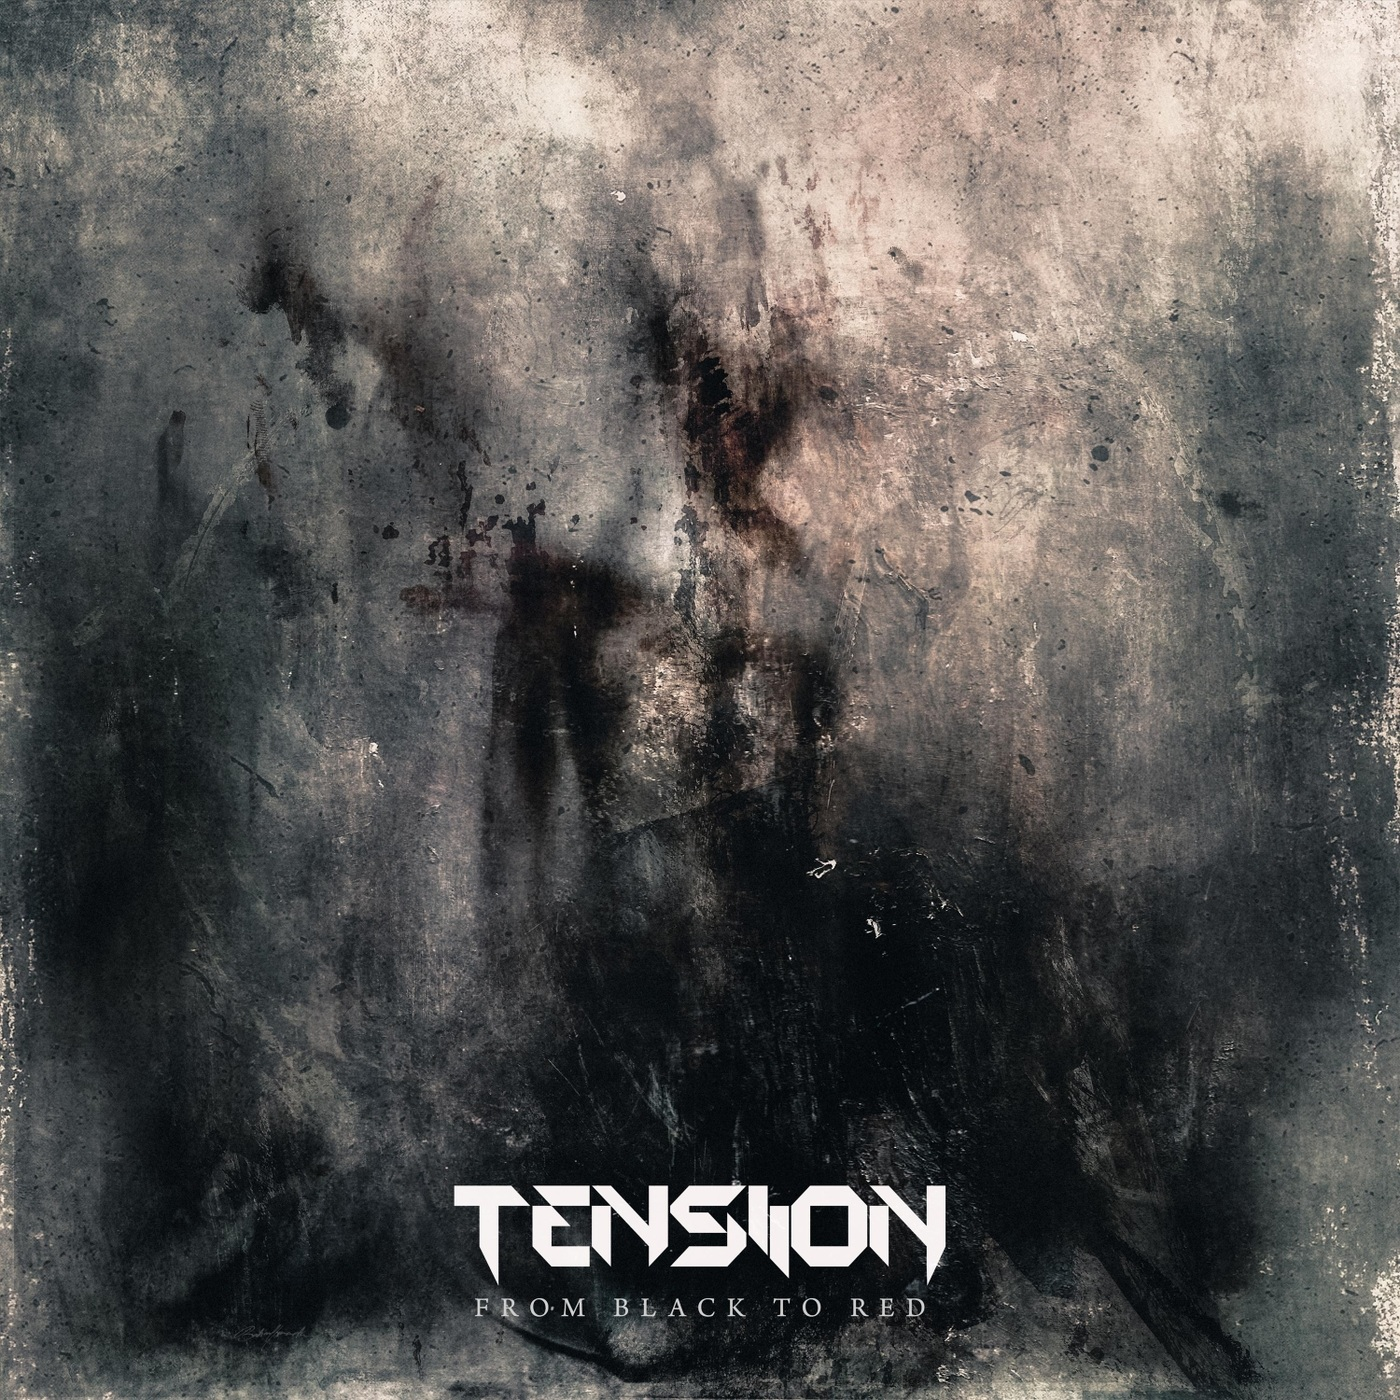 Tensiion - From Black to Red